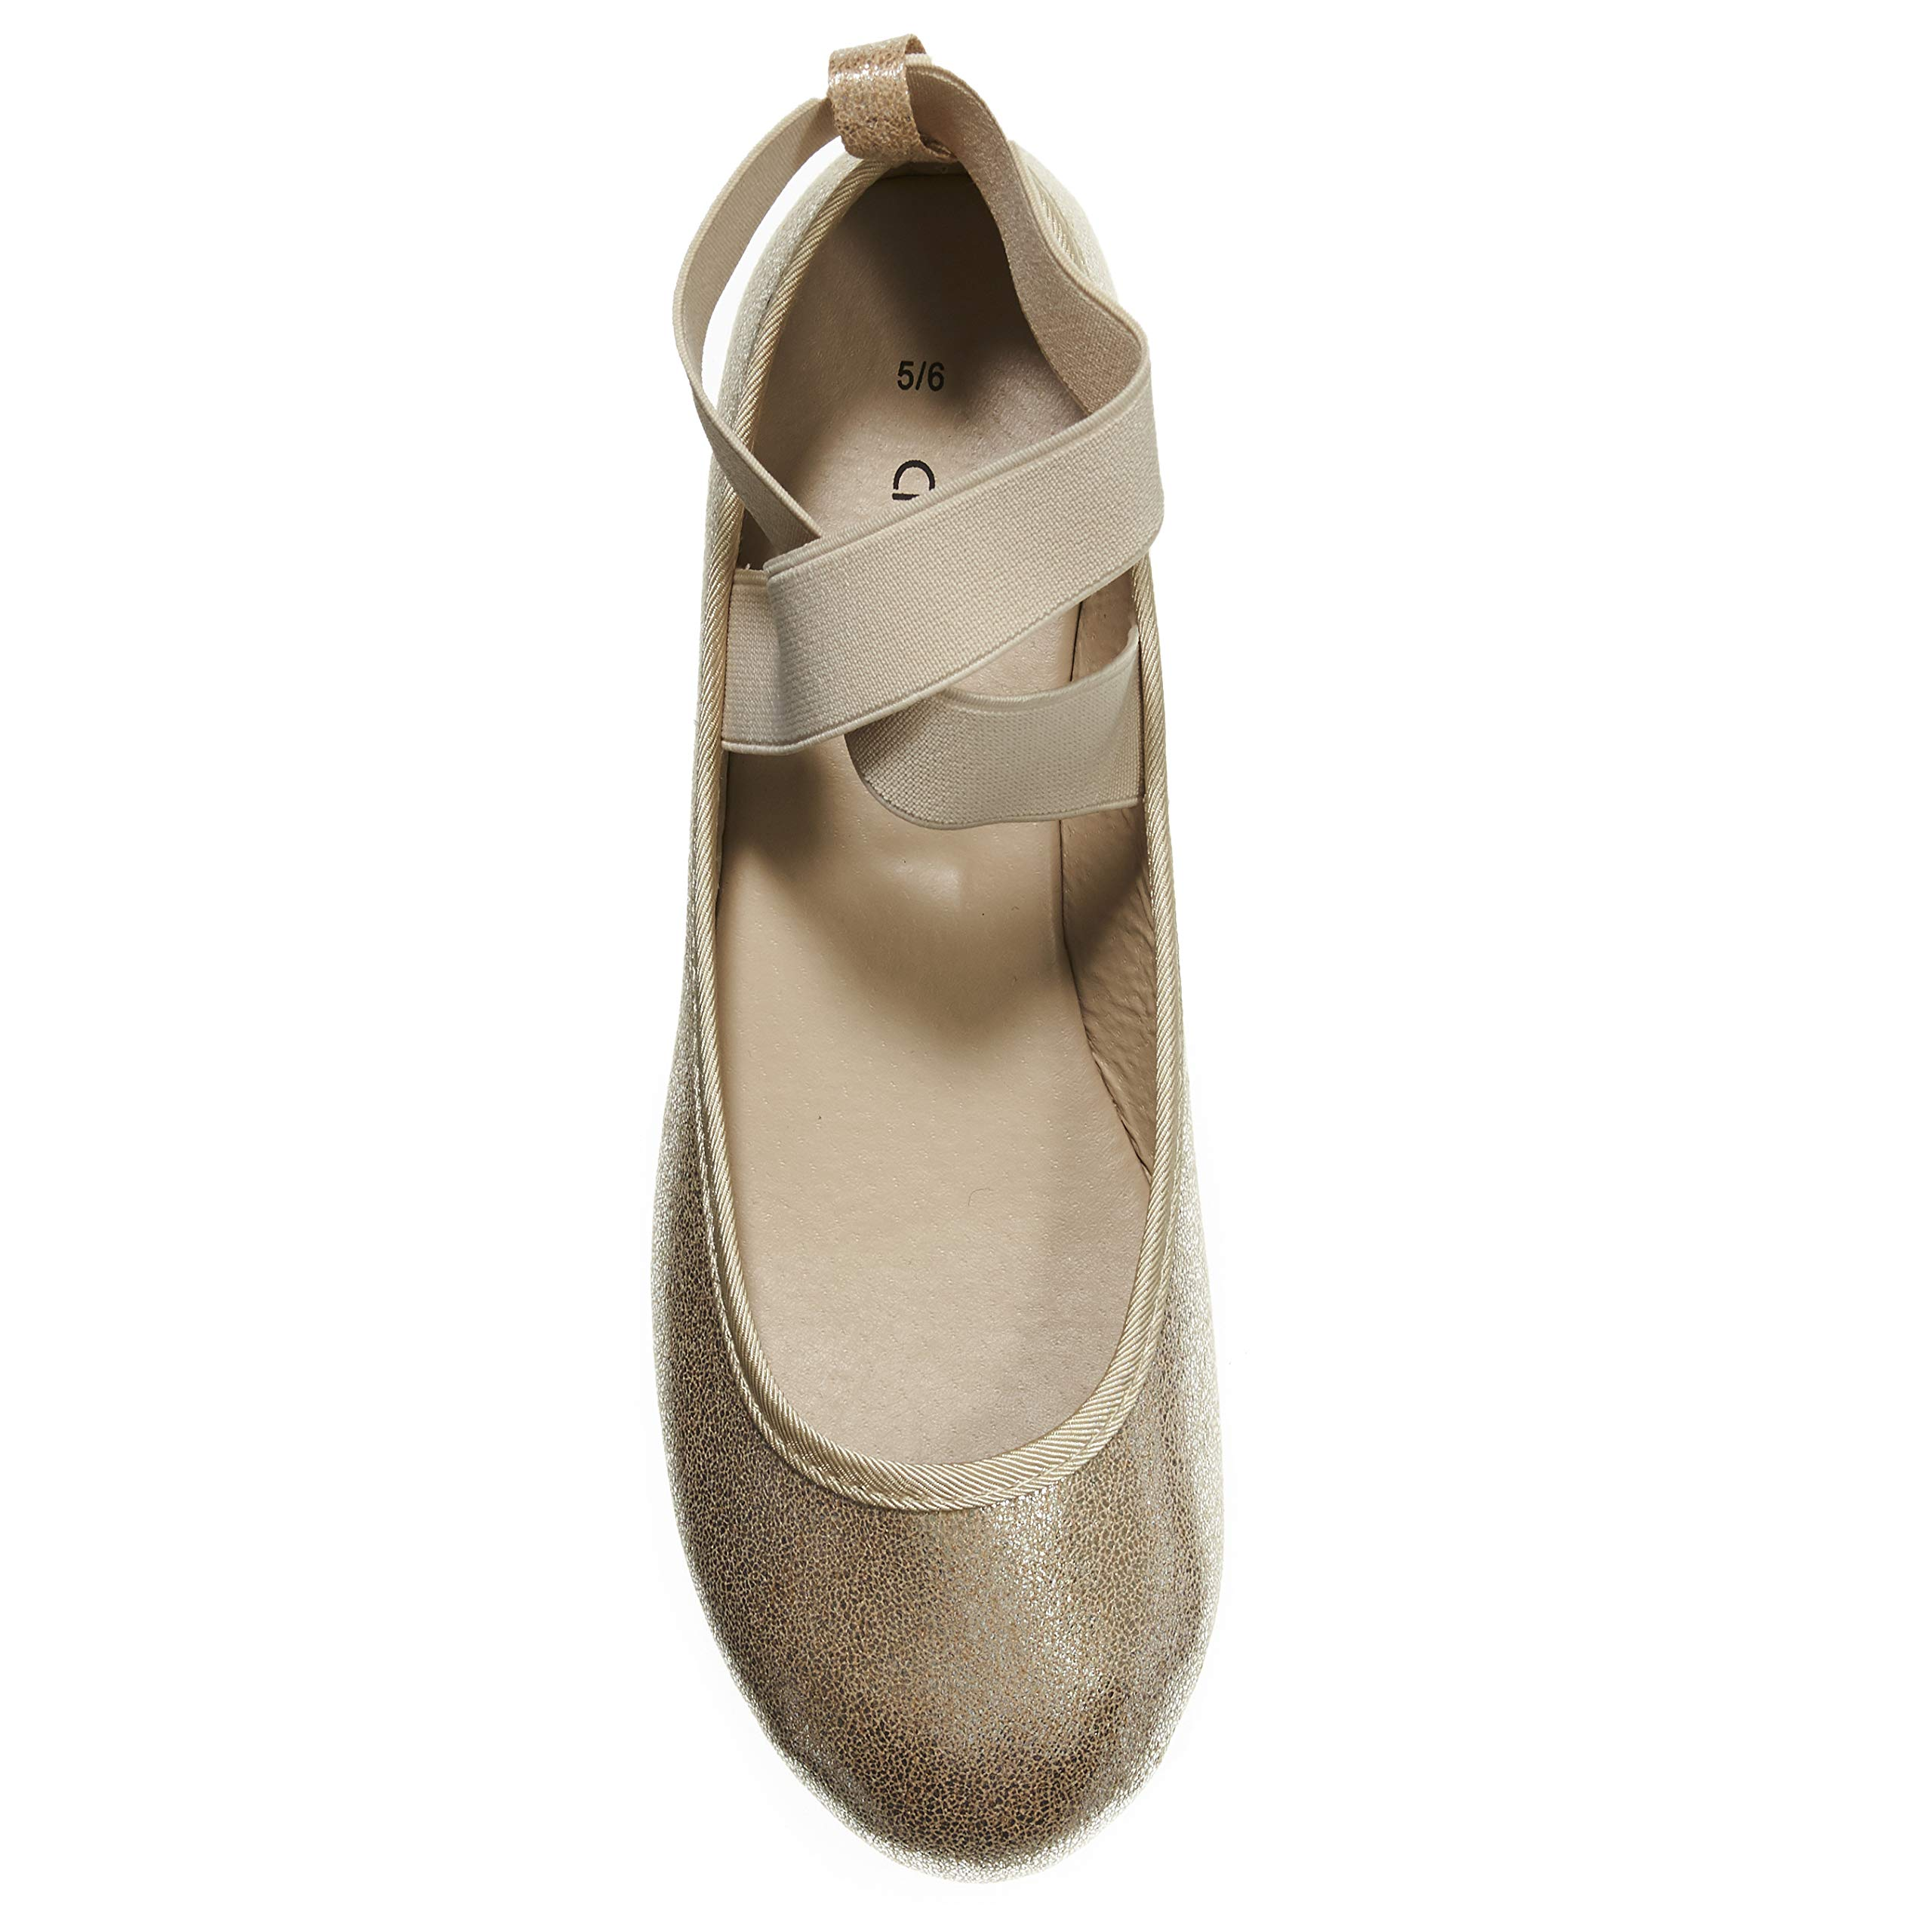 Women's Ballet Flats Size 5-6 Metallic with Elastic Straps Slip-On Shoes Gold